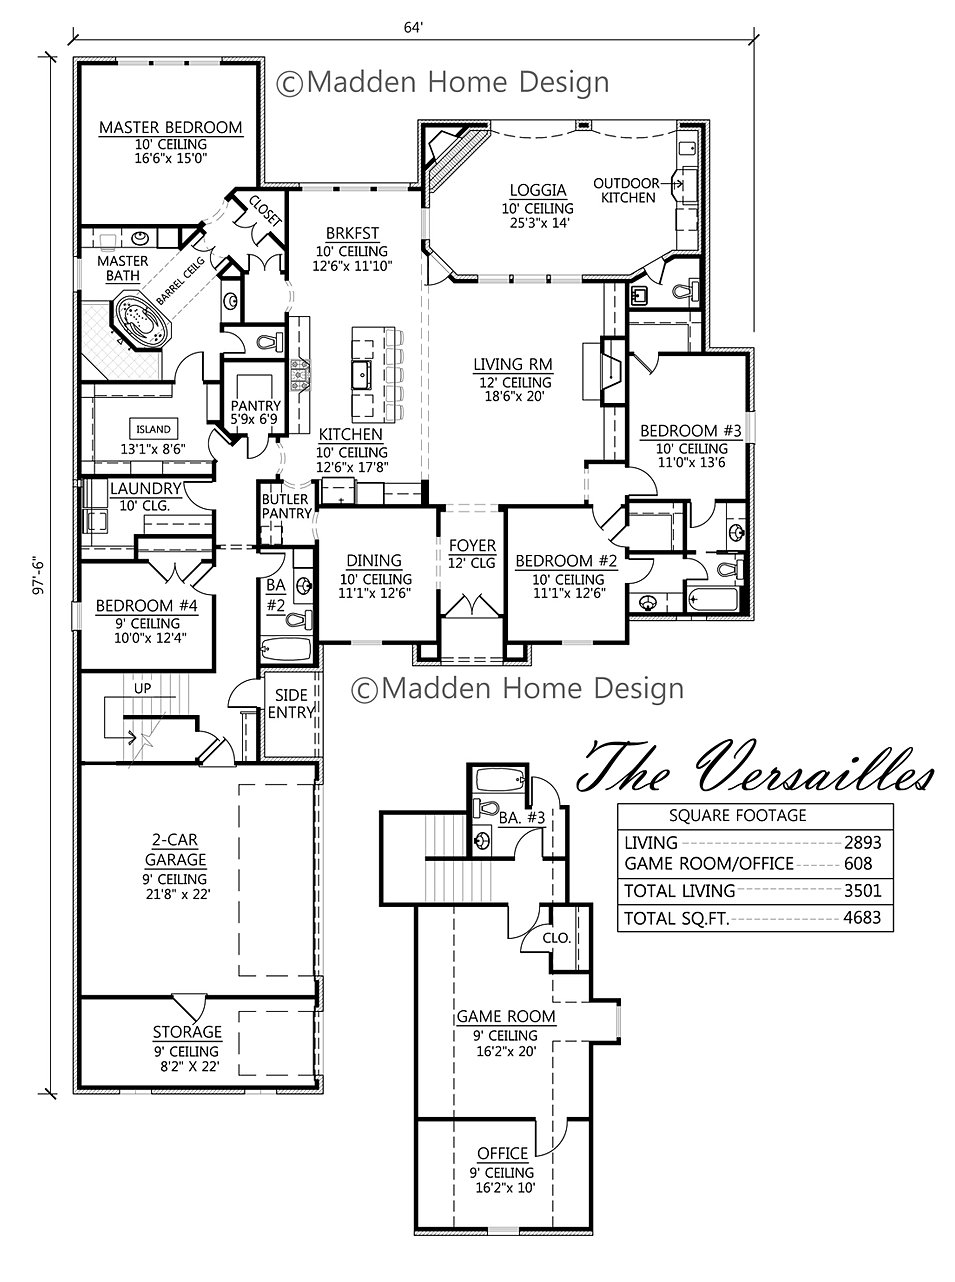 madden home design - the versailles